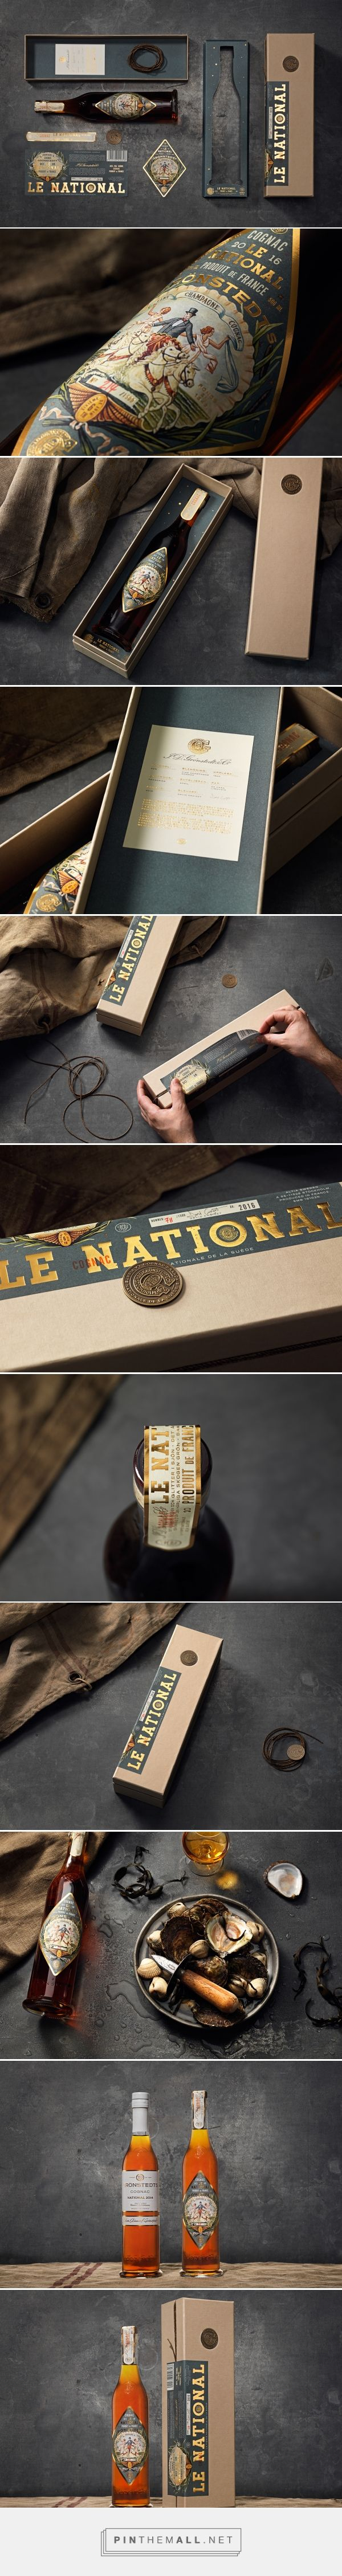 Branding, illustration and packaging for Grönstedts Le National on Behance by Lachlan Bullock Stockholm, Sweden curated by Packaging Diva PD. Every year in June Grönstedts release 'Le National' - their flagship cognac celebrating the Swedish national holiday.